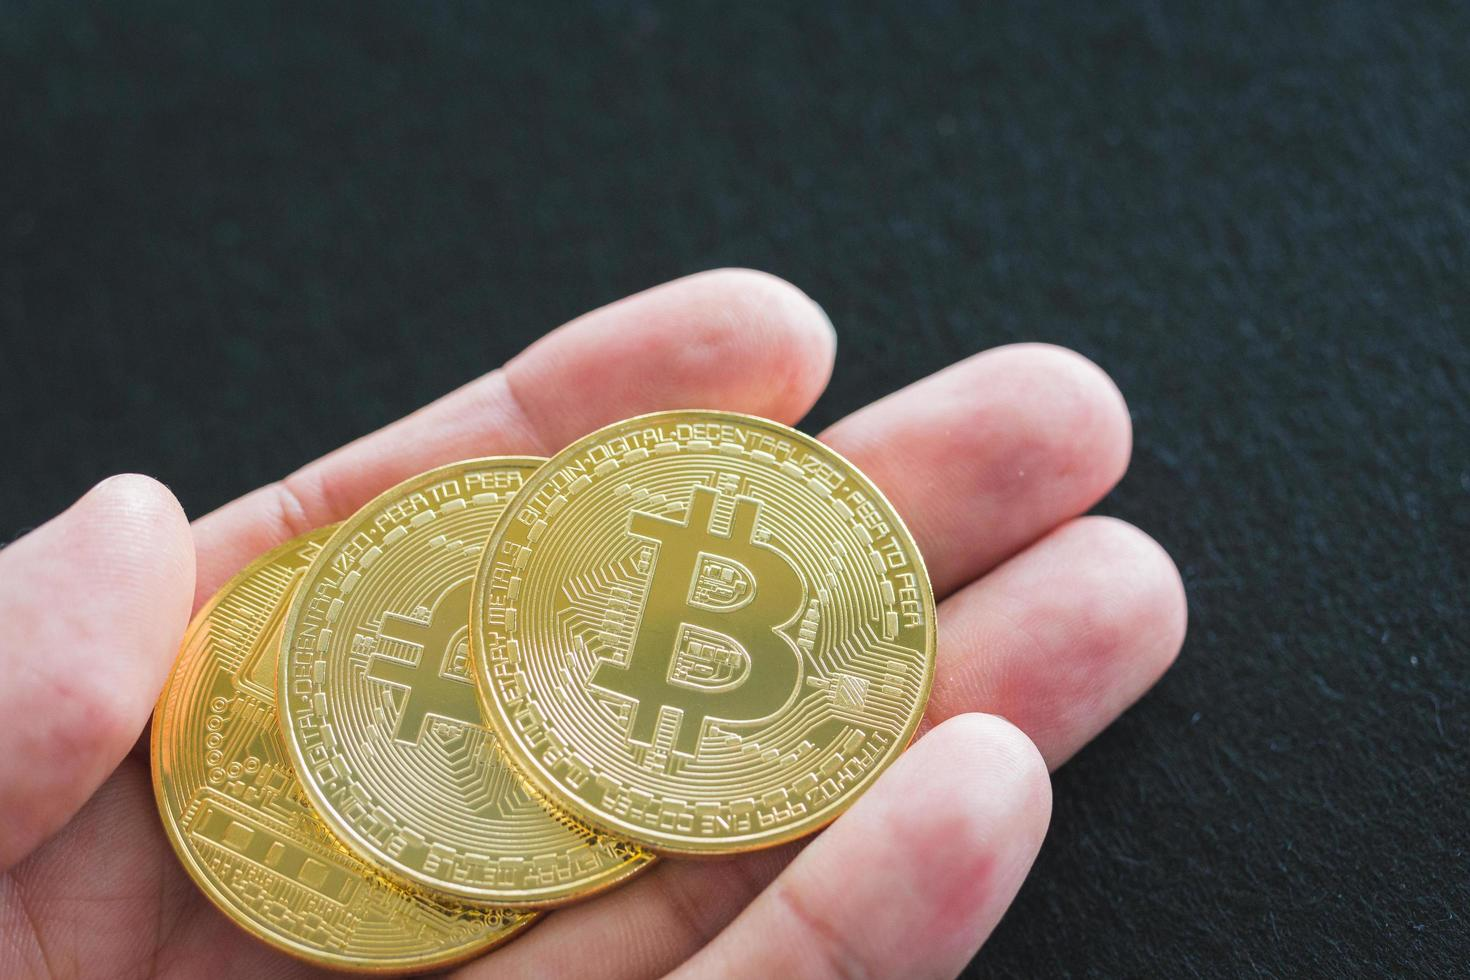 bitcoin-munten, digitaal valutaconcept foto